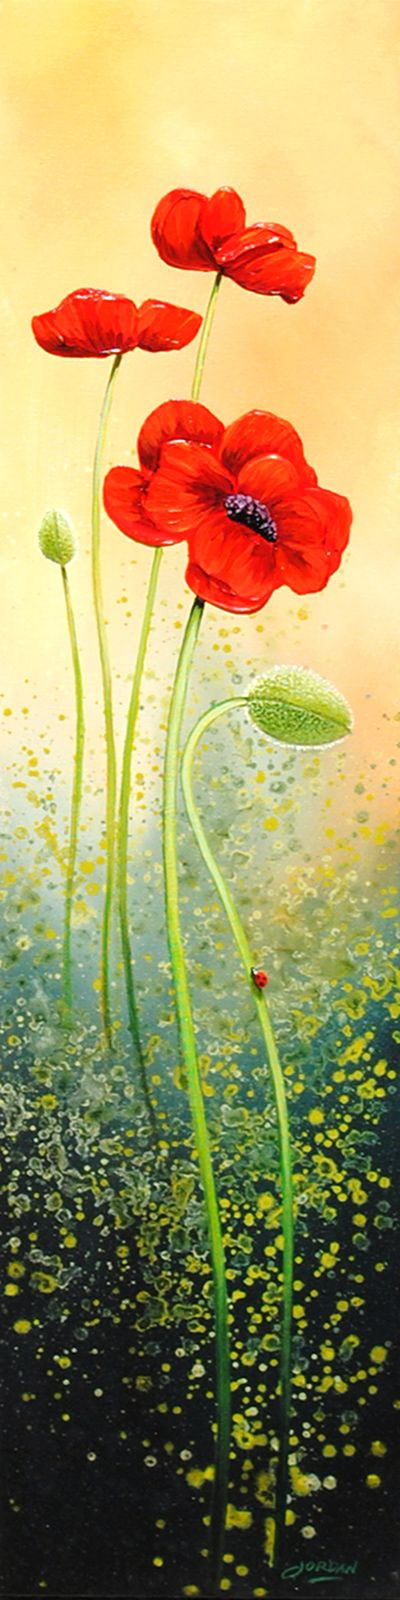 Poppies and Buds by artist Jordan Hicks.